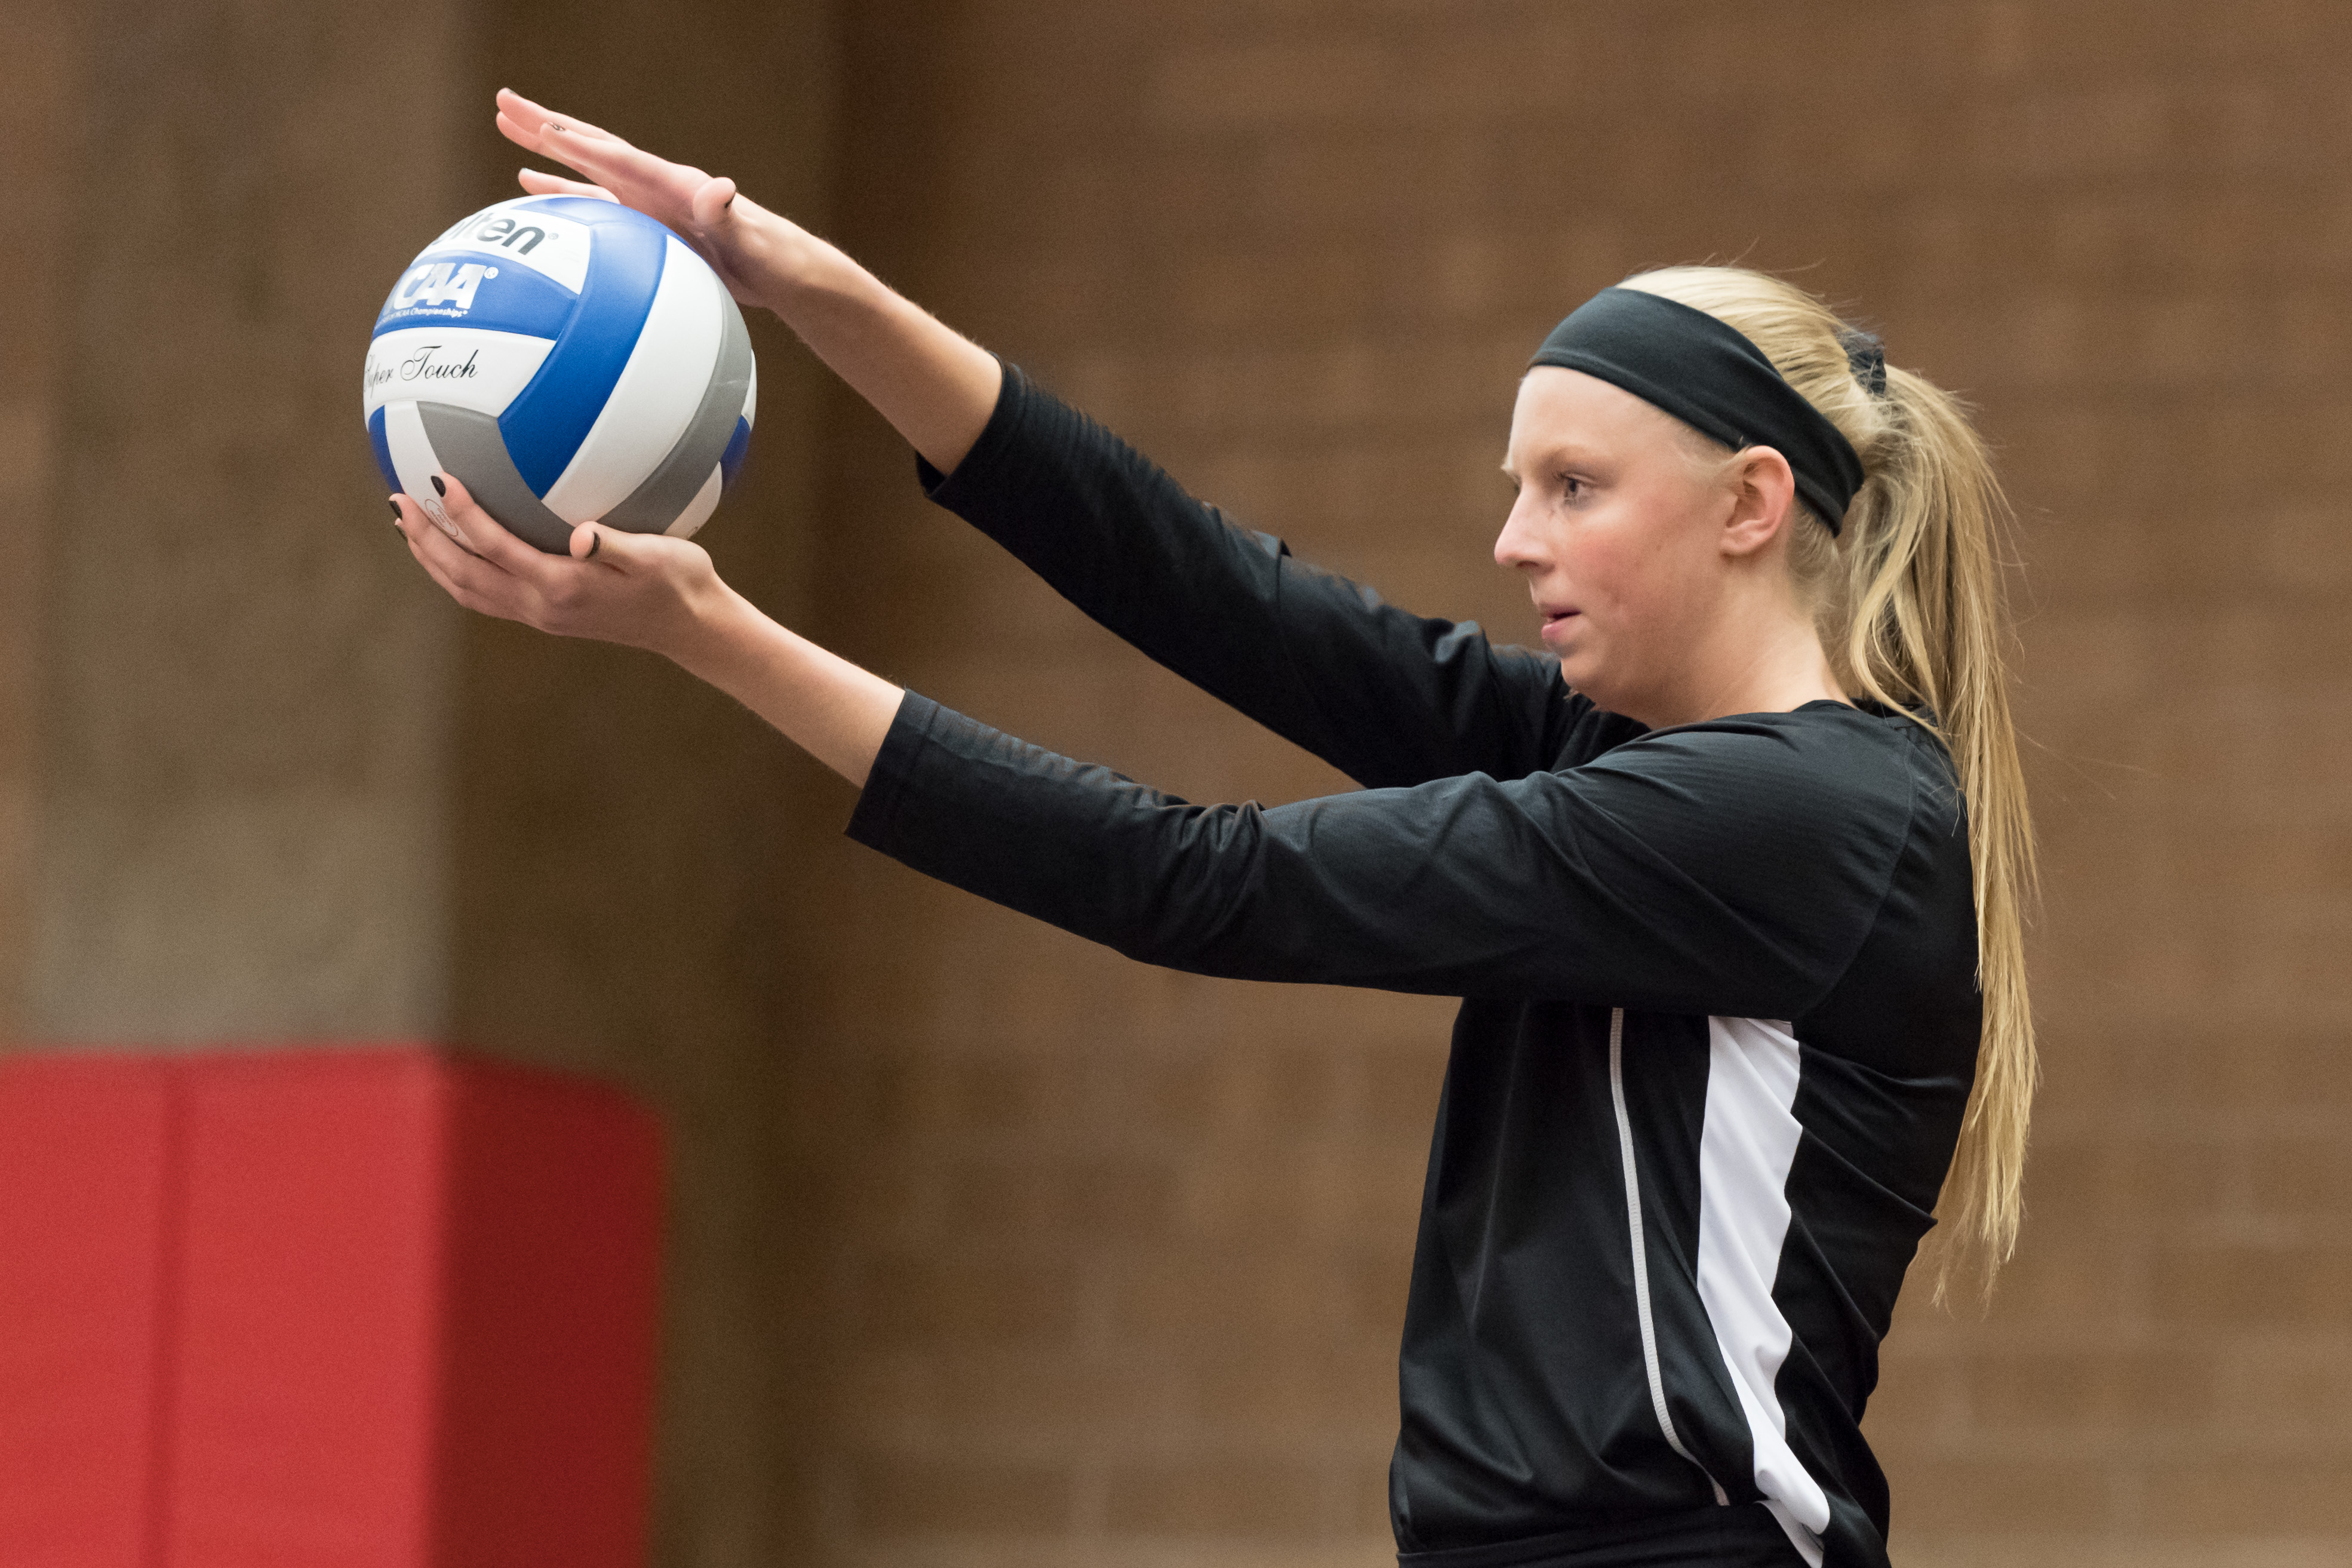 A volleyball player is holding the ball in her hands and is getting ready to hit it.